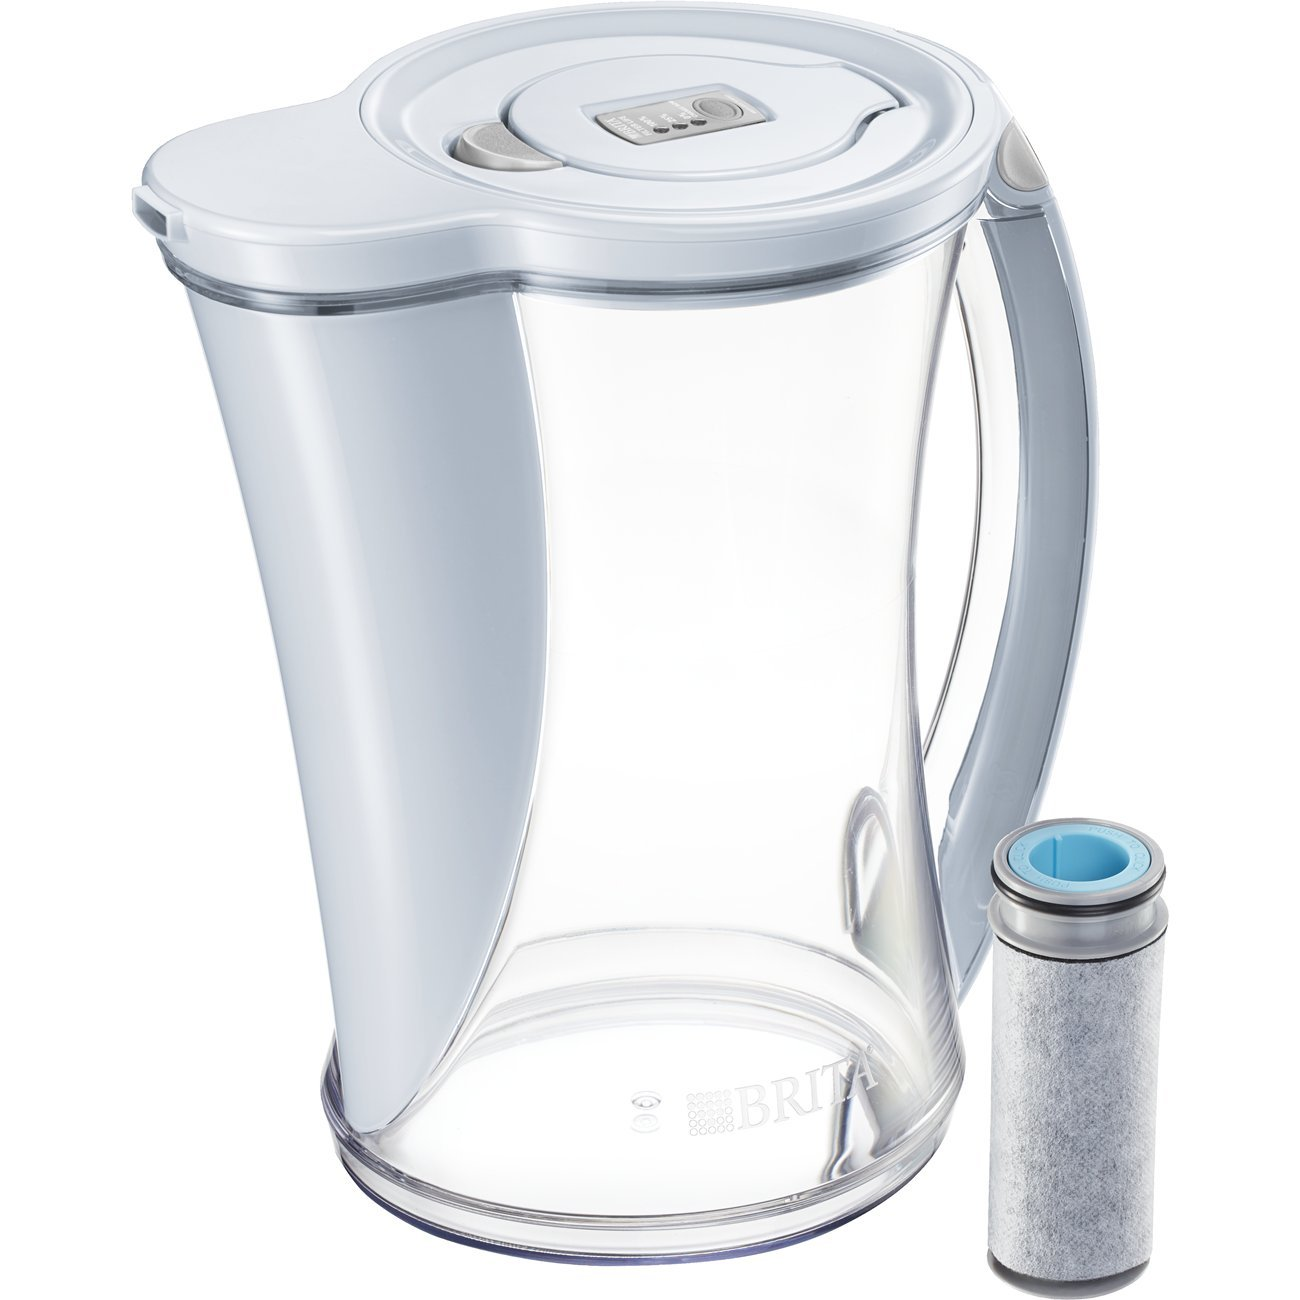 Brita 10060258362388 Large Stream Filter As You Pour Water Pitcher with 1 Filter, Carbon